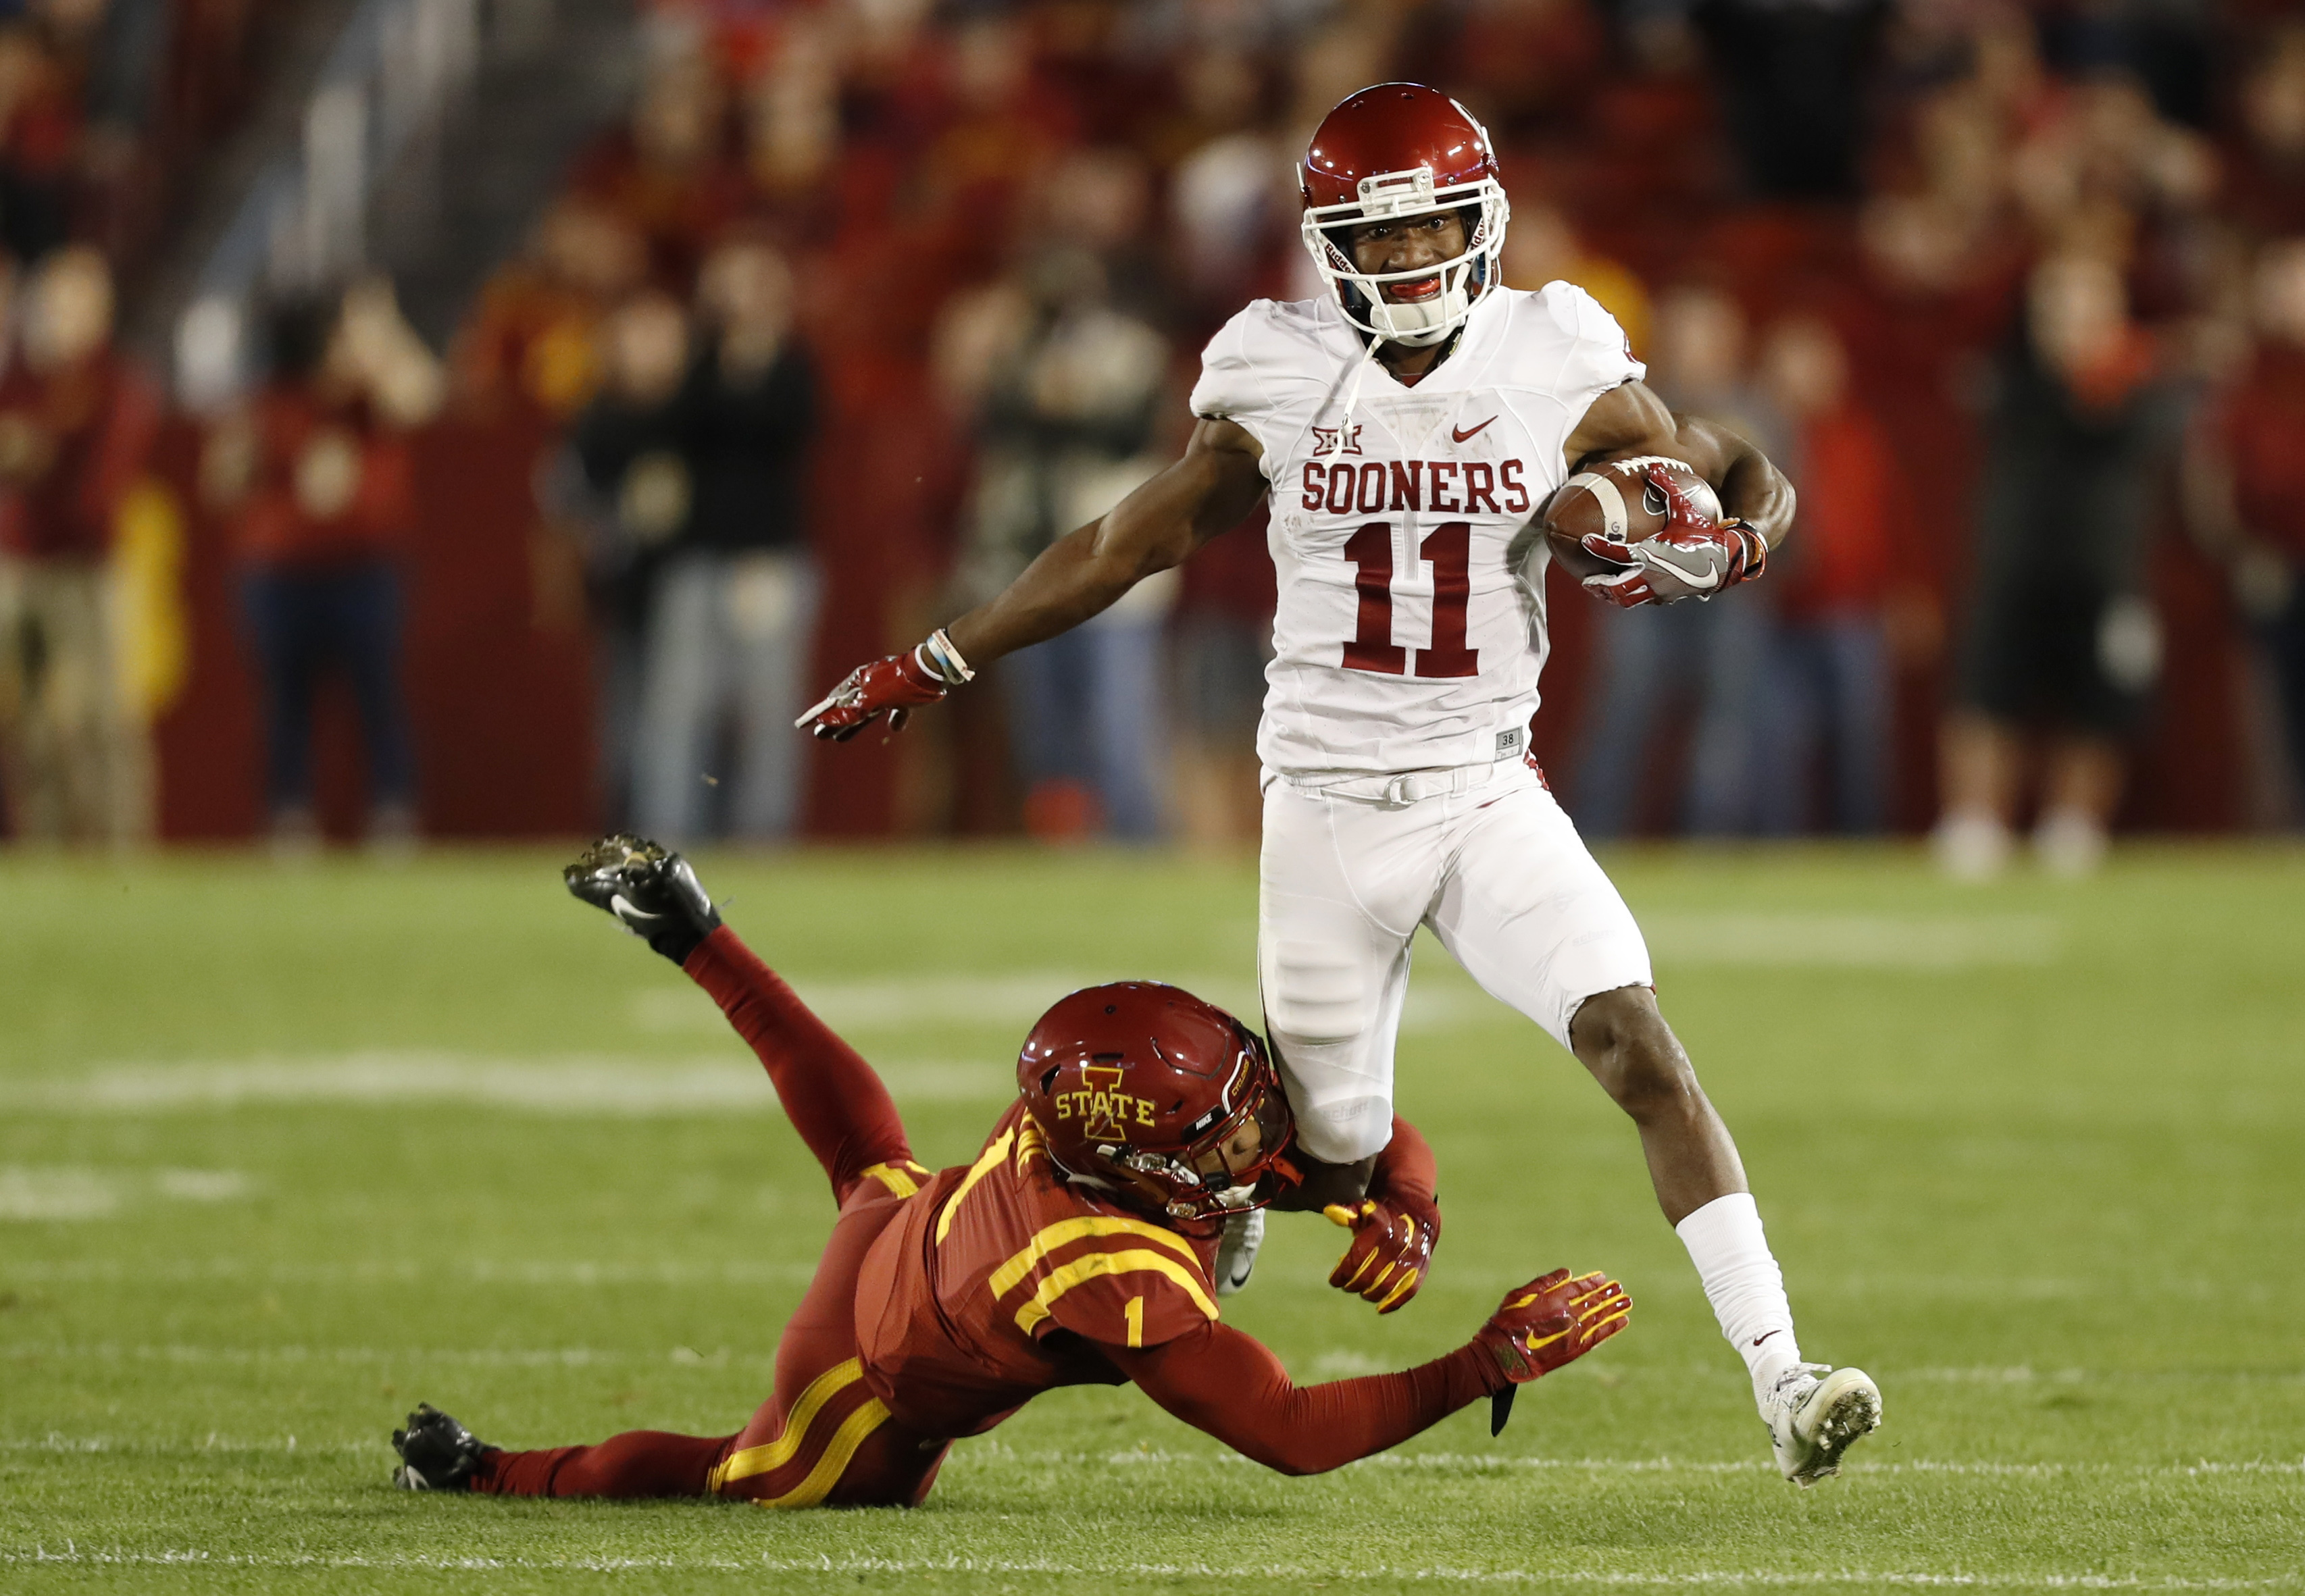 FILE - In this Nov. 3, 2016, file photo, Oklahoma wide receiver Dede Westbrook (11) runs from Iowa State defensive back D'Andre Payne during the first half of an NCAA college football game, in Ames, Iowa. Westbrook is having the best stretch of games ever